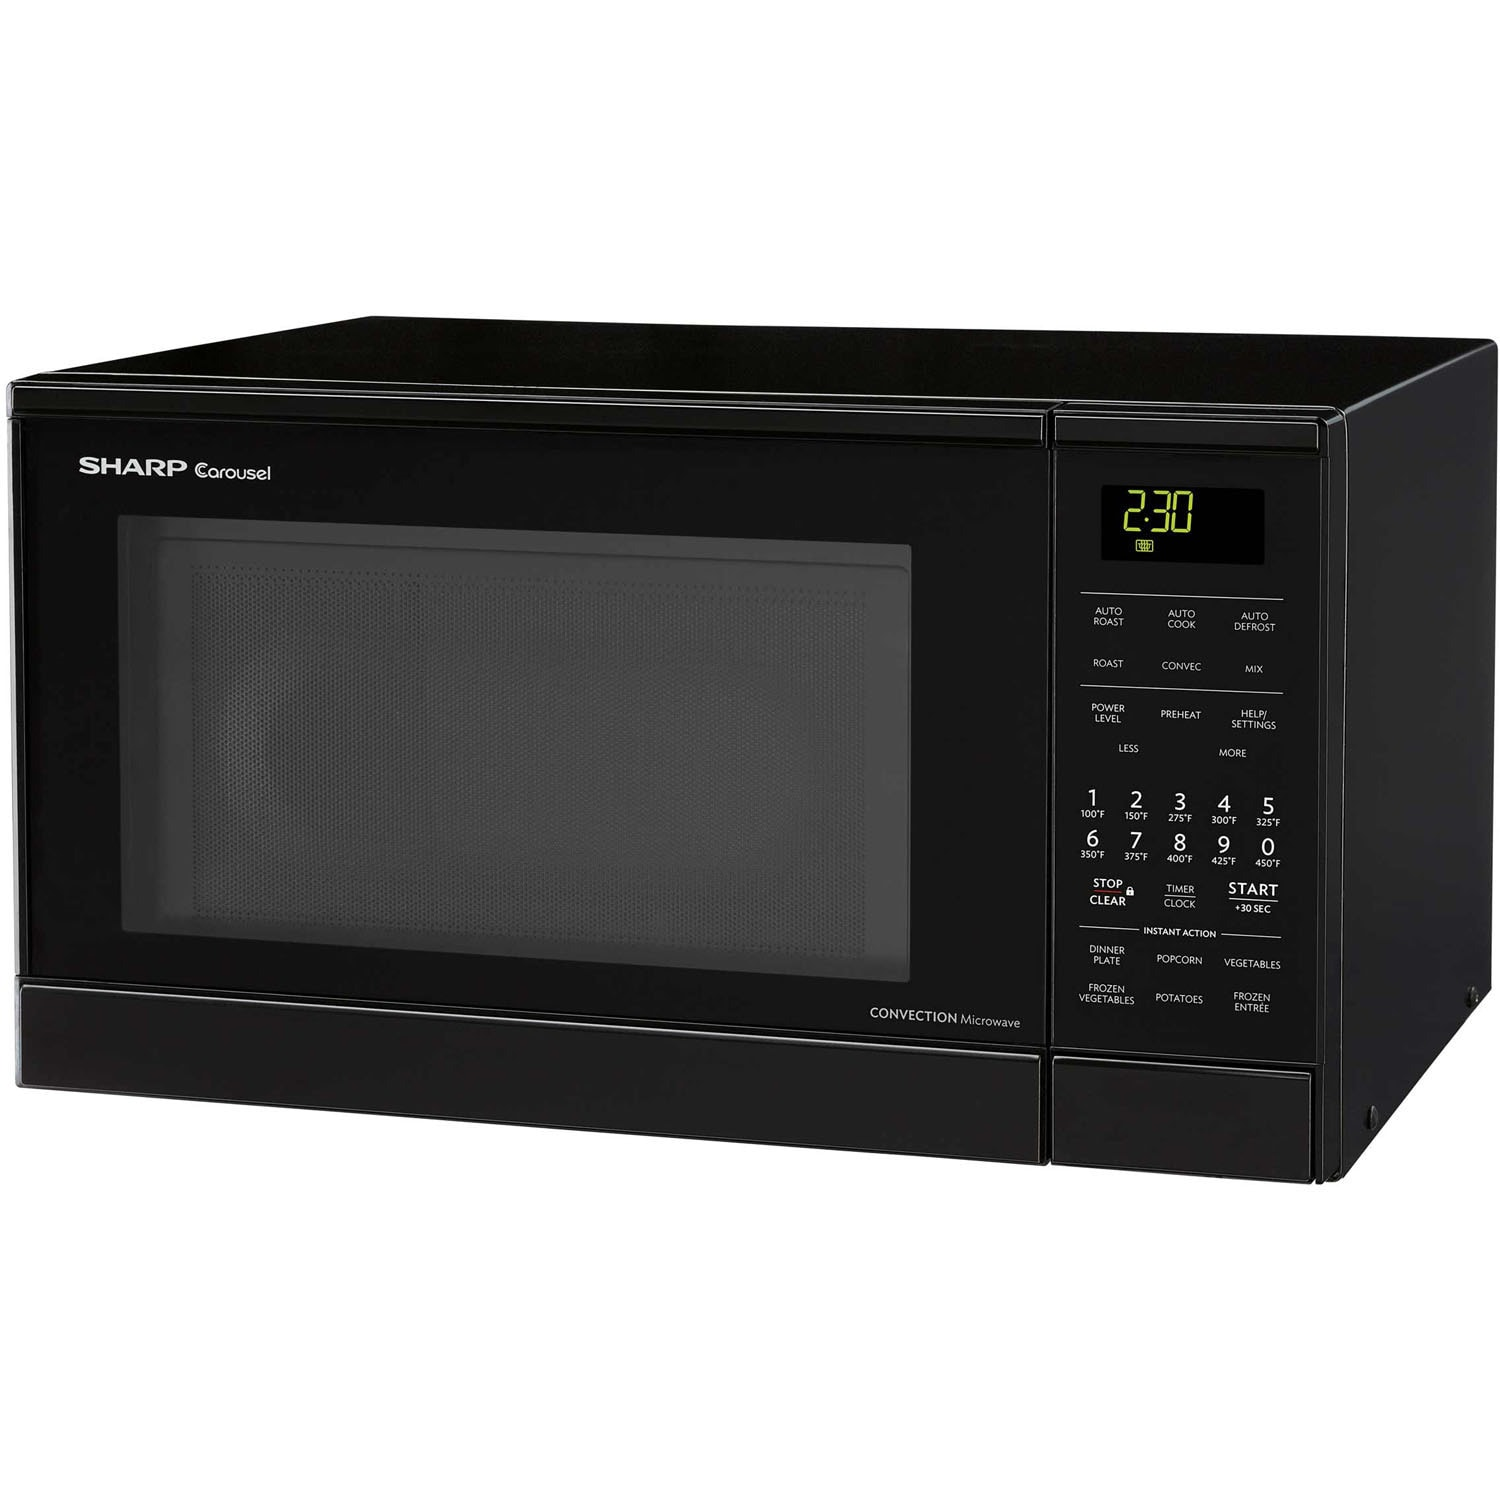 Microwave Oven Stainless Steel Interior Bestmicrowave